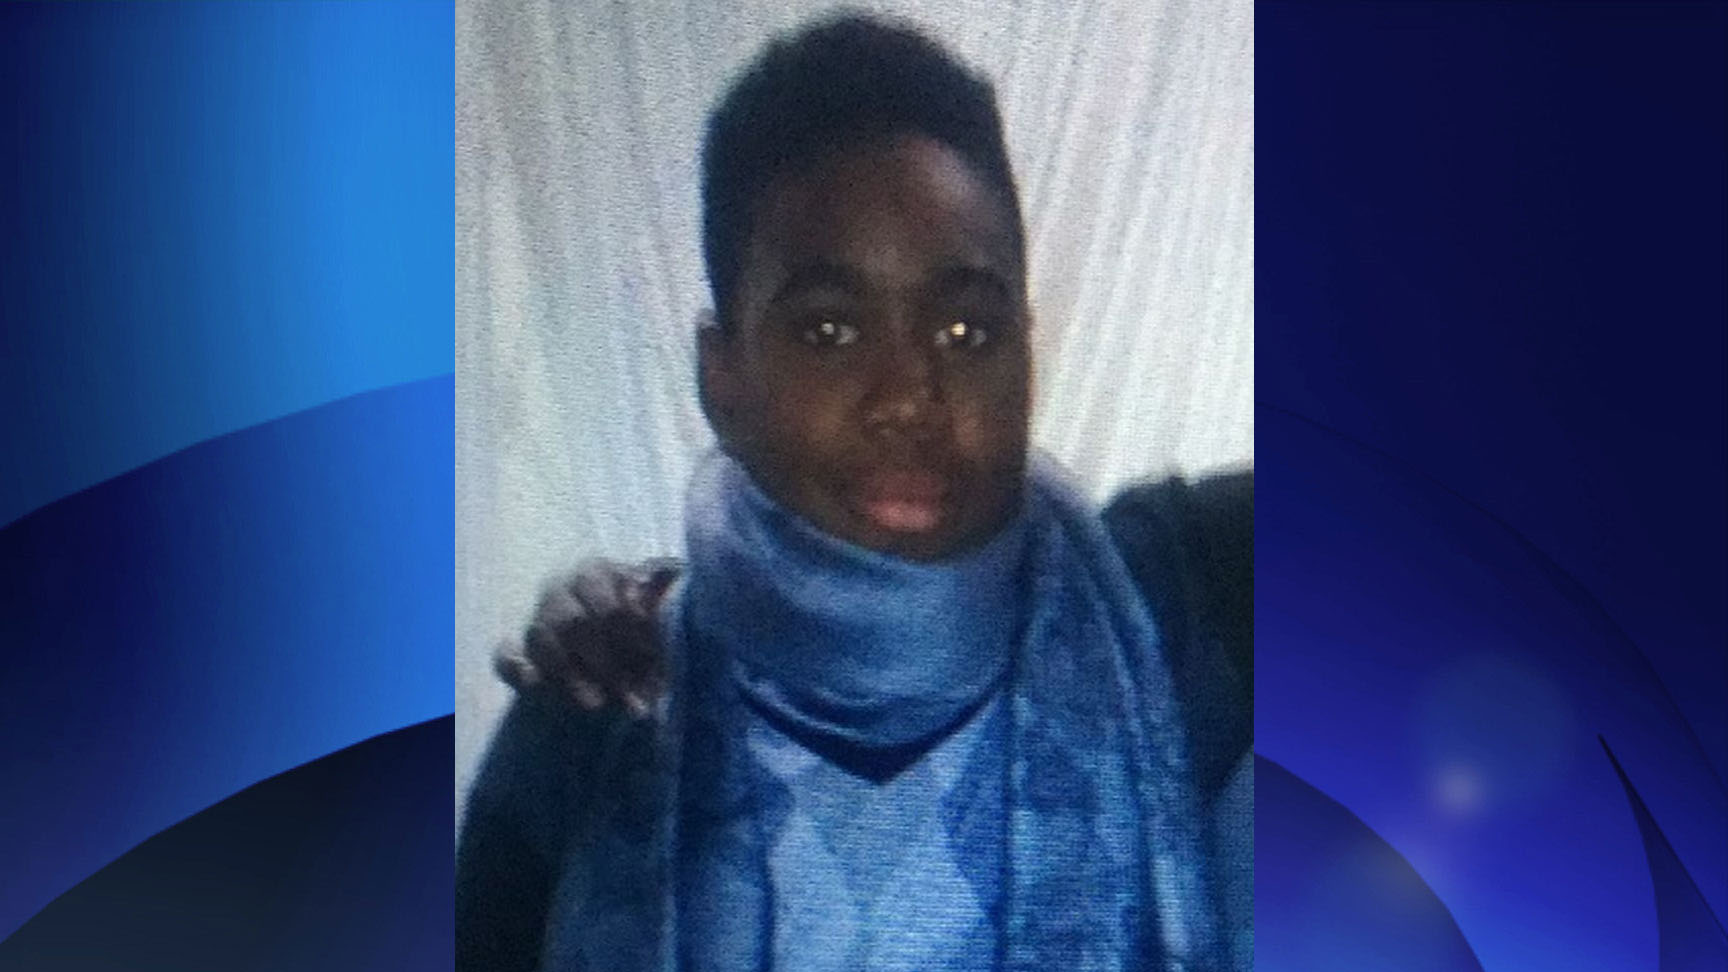 Missing 12 year old last seen in yorkdale mall found safe citynews missing 12 year old last seen in yorkdale mall found safe ccuart Choice Image